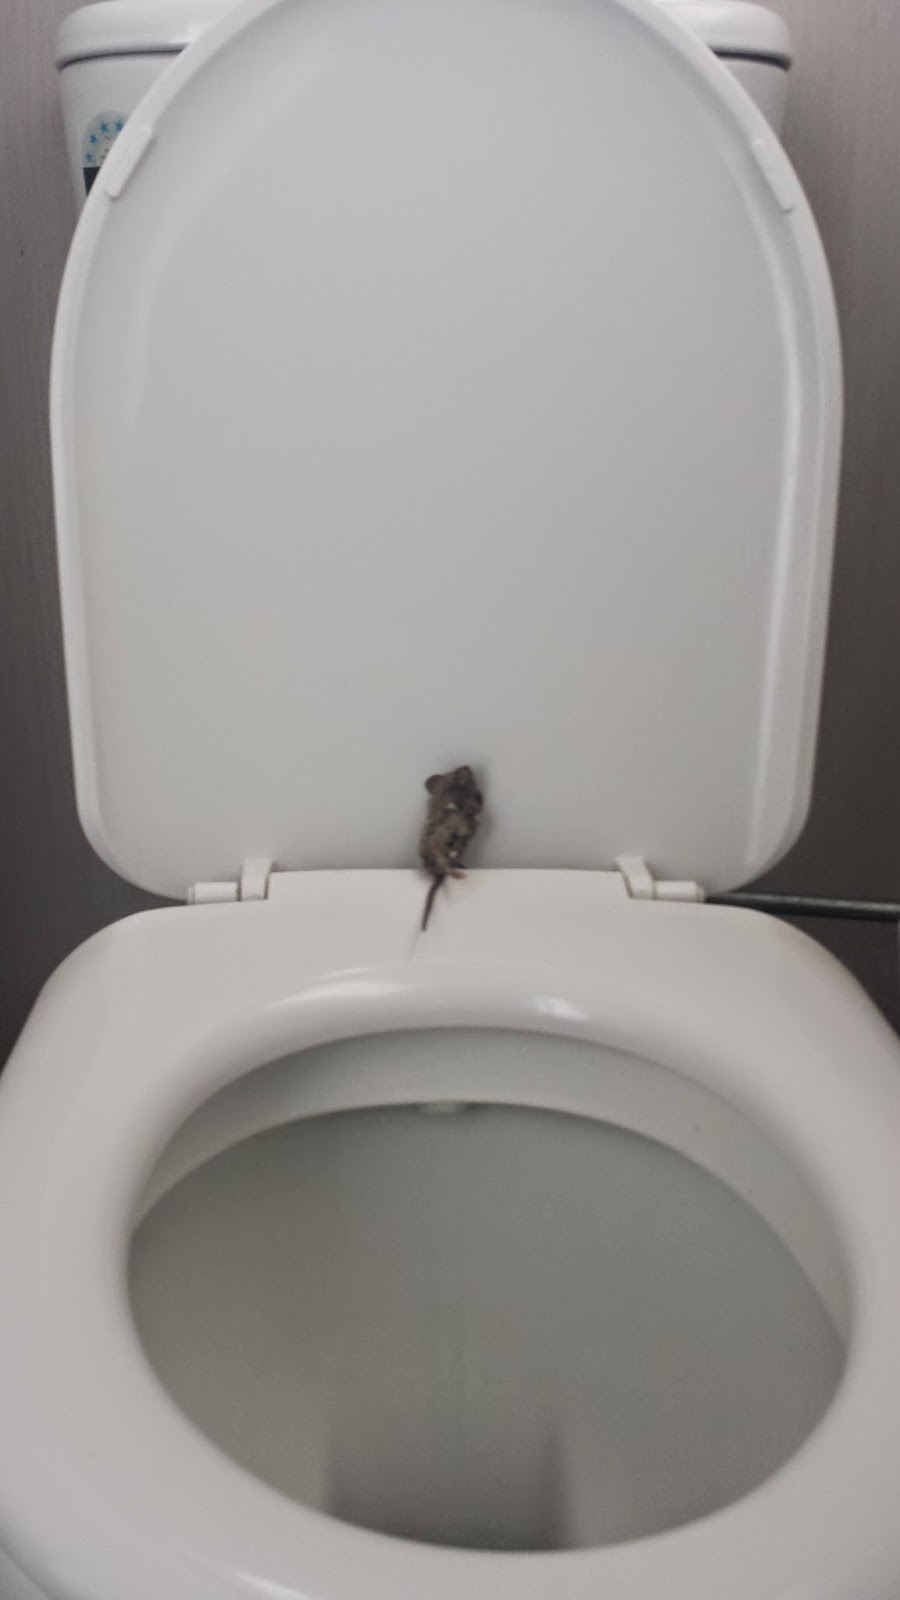 toilet trained mouse